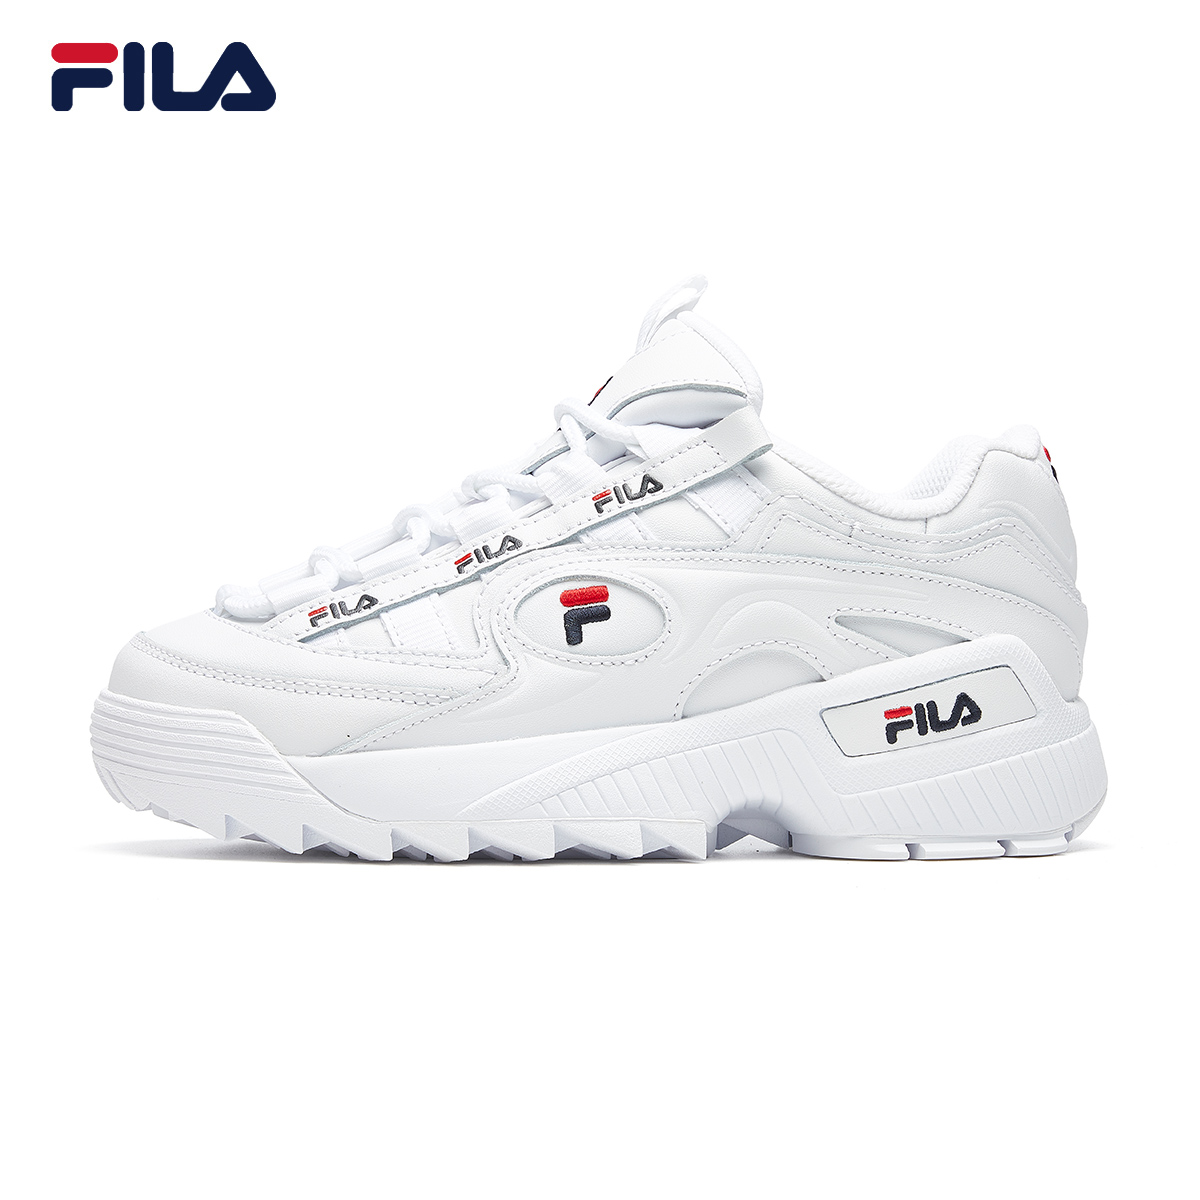 FILA Fila official retro old shoes women 2021 spring new casual sports shoes little monster women's shoes